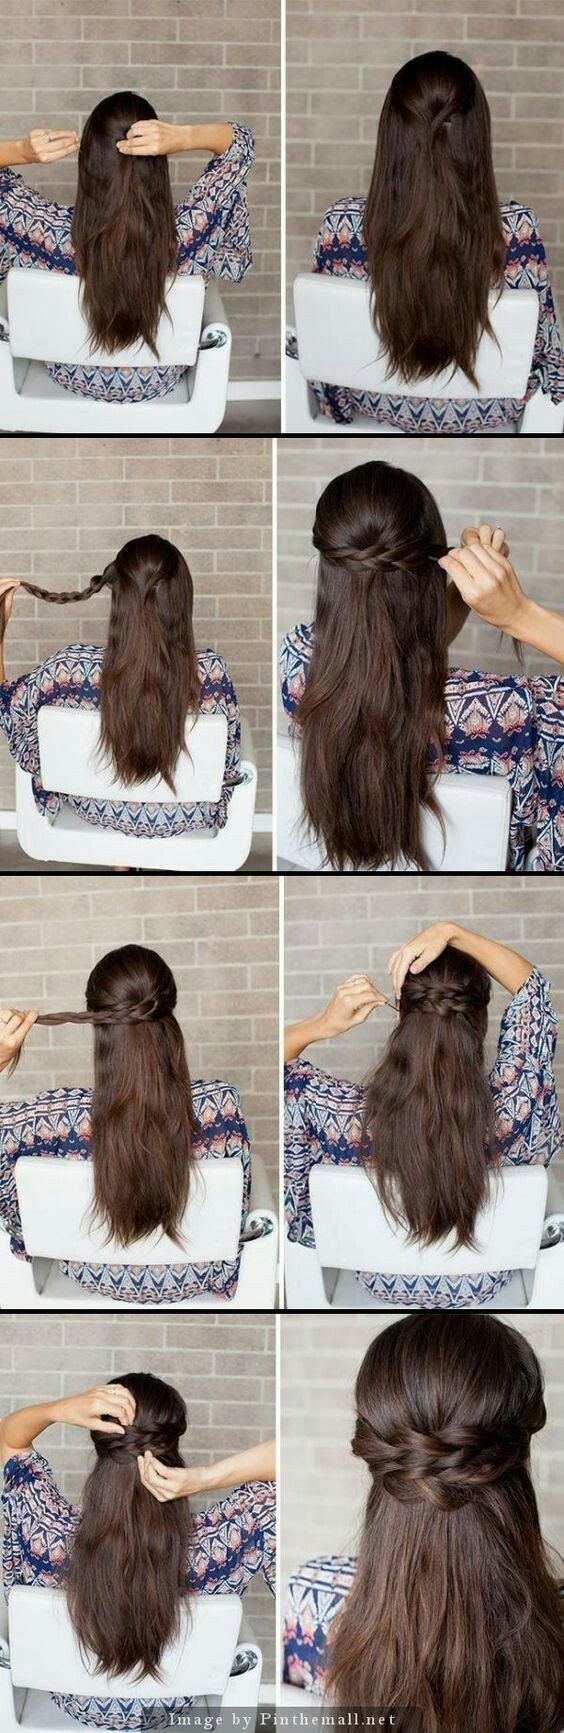 Find 48 Easy Hairstyles for Schools + Tutorials | hair & make up ...